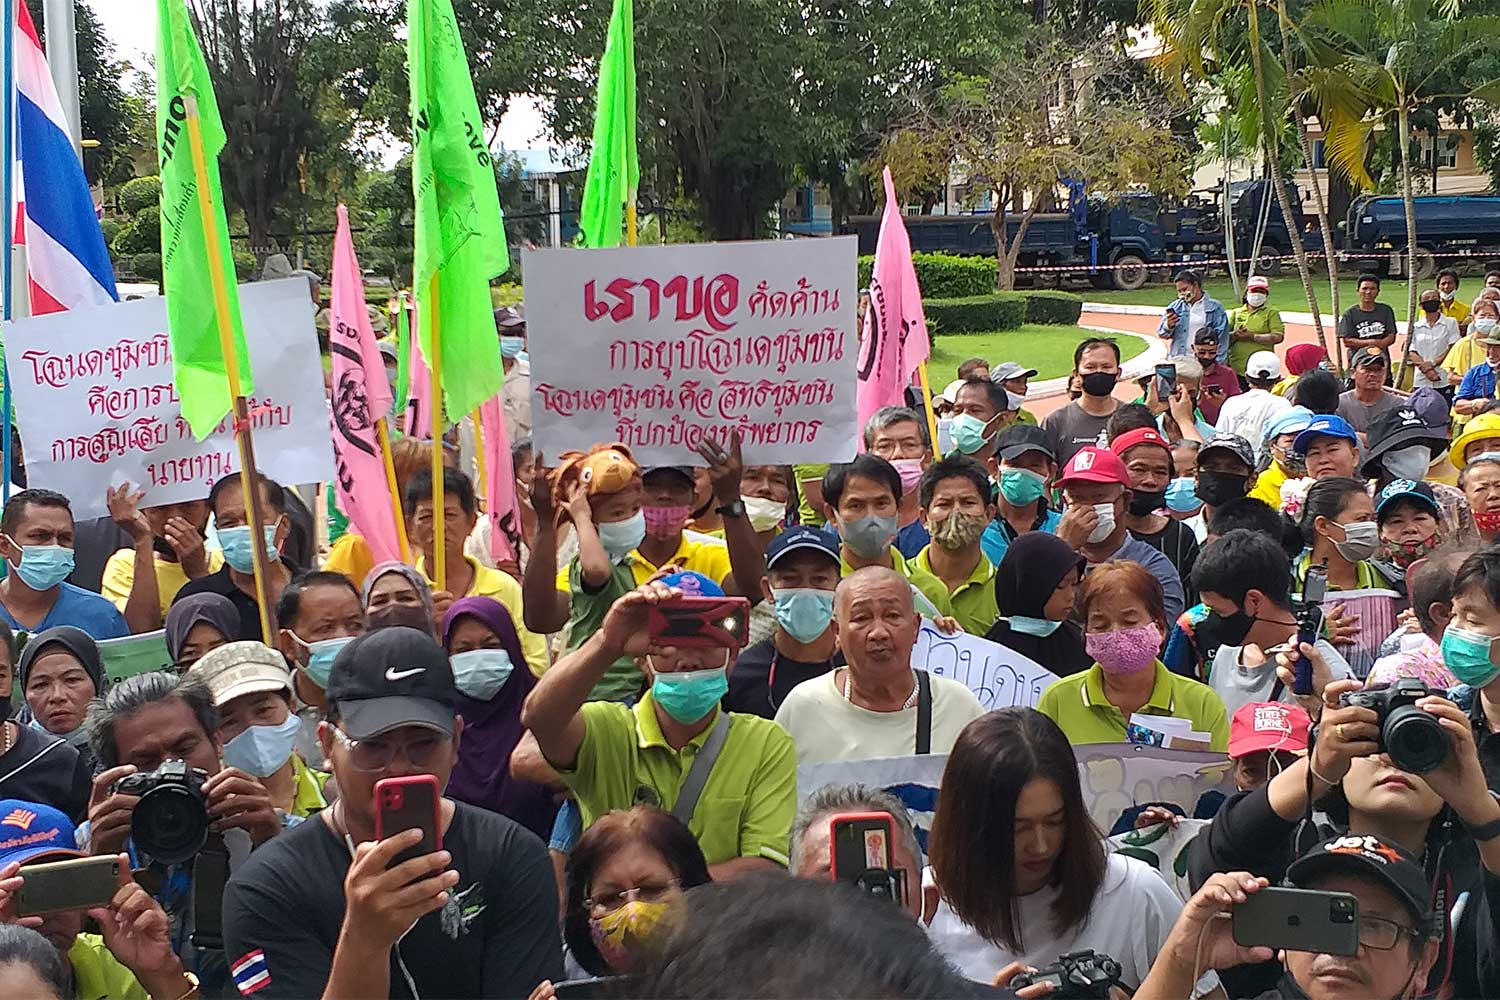 About 300 activists and land rights network members gather in front of the Phuket provincial hall to ask the government review a plan to scrap community land title deeds. (Photo: Achadtaya Chuenniran)